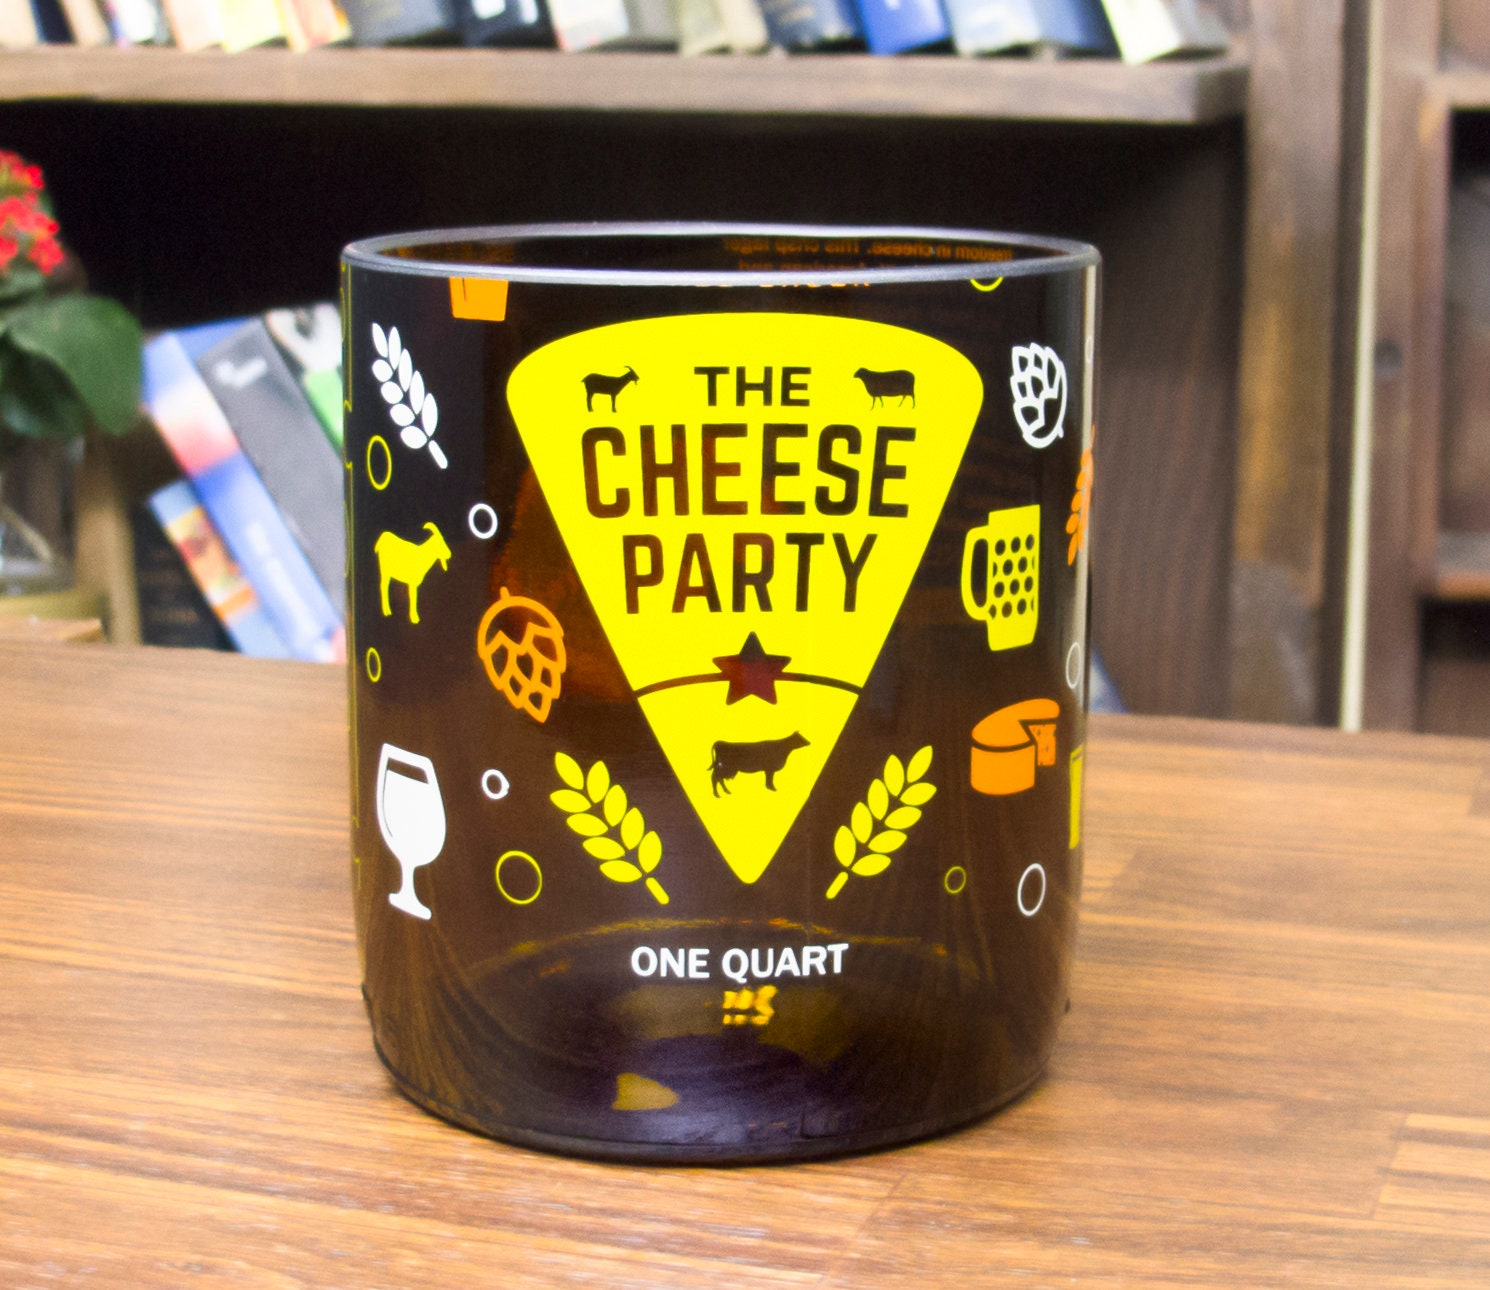 Valentines Presents Confluence The Cheese Party Gift Idea For Fiance 21st Birthday Perfect Dad Awesome Man Gifts Husband